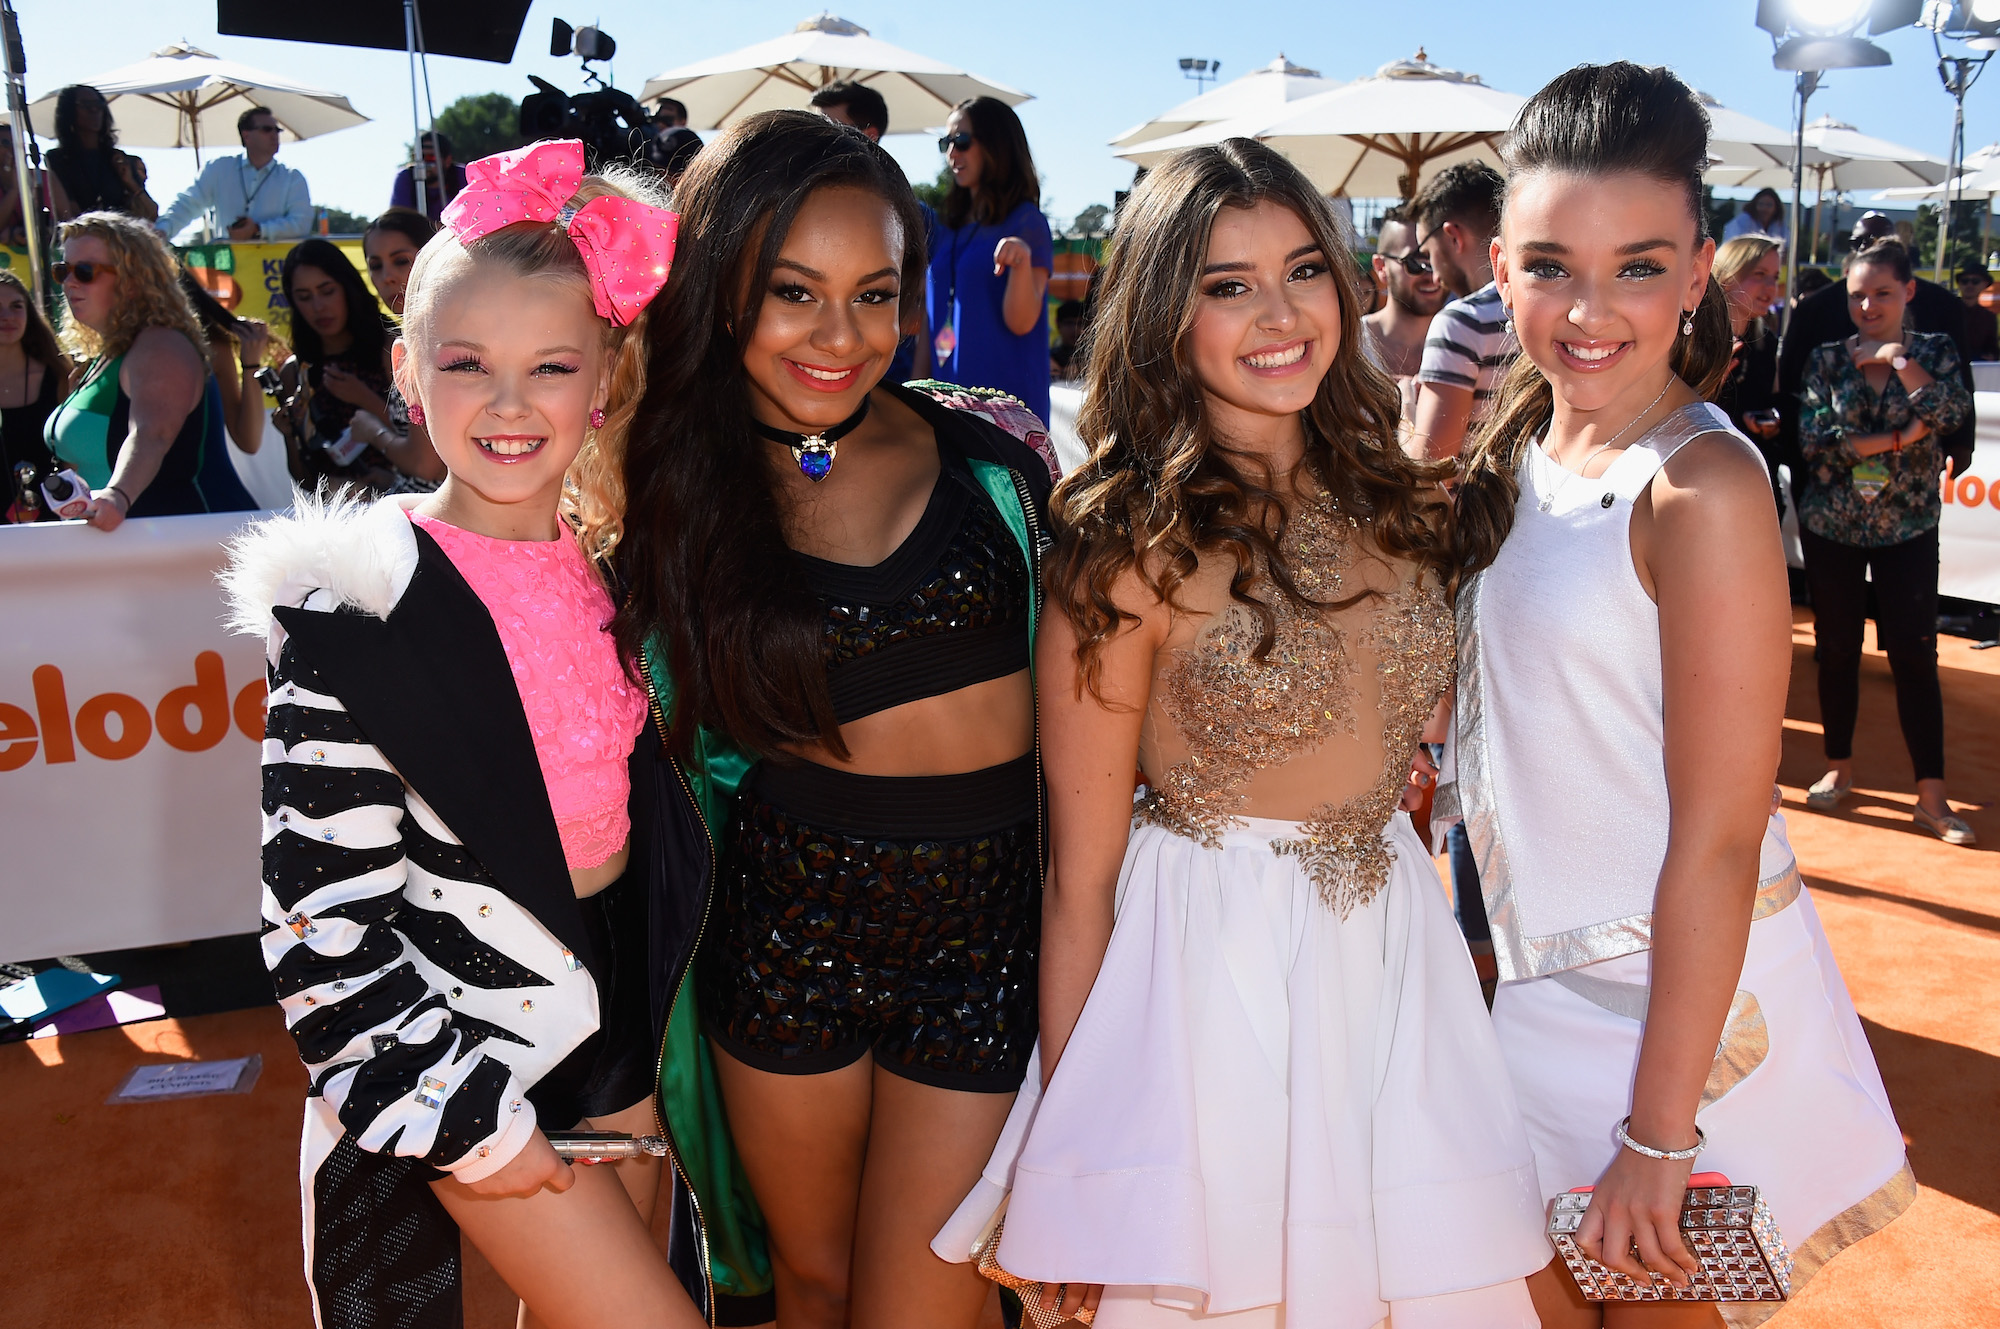 JoJo Siwa, Nia Sioux Frazier, Kalani Hilliker, and Kendall Vertes at Nickelodeon's 28th Annual Kids' Choice Awards on March 28, 2015.